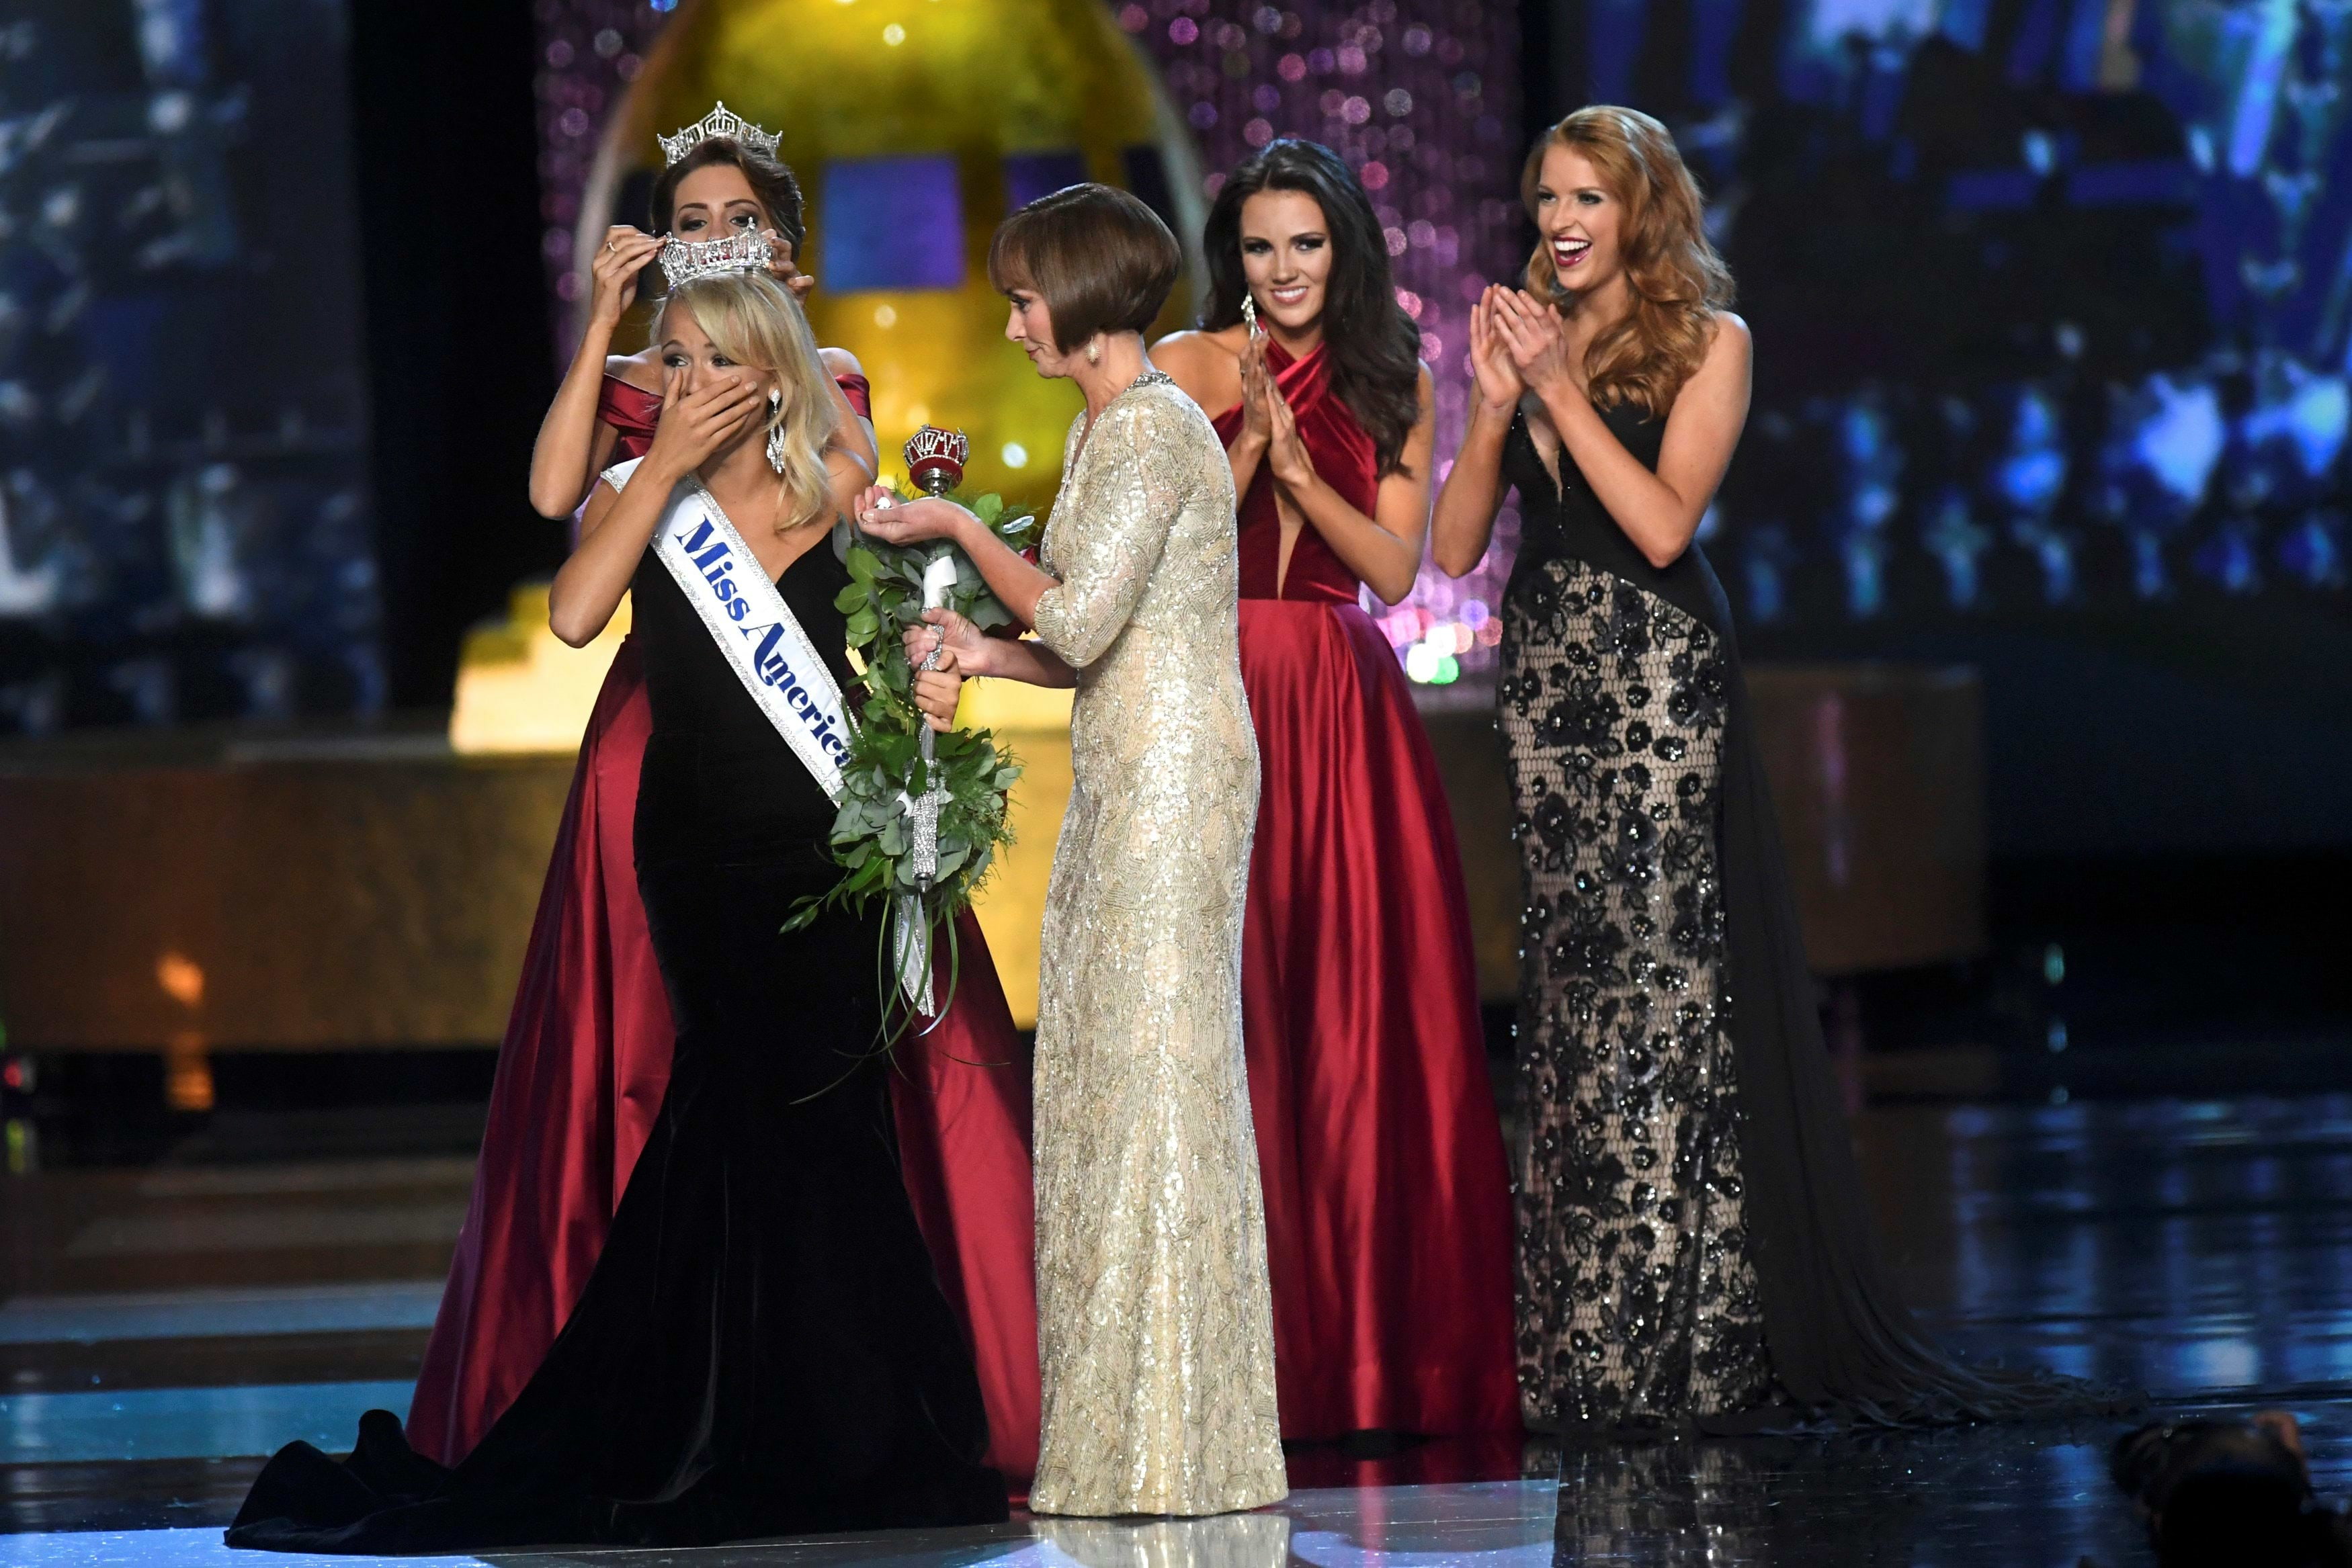 Miss Arkansas Savvy Shields, 21, reacts after winning the 96th Miss America Pageant inside Boardwalk Hall in Atlantic City, New Jersey September 11, 2016.  REUTERS/Mark Makela